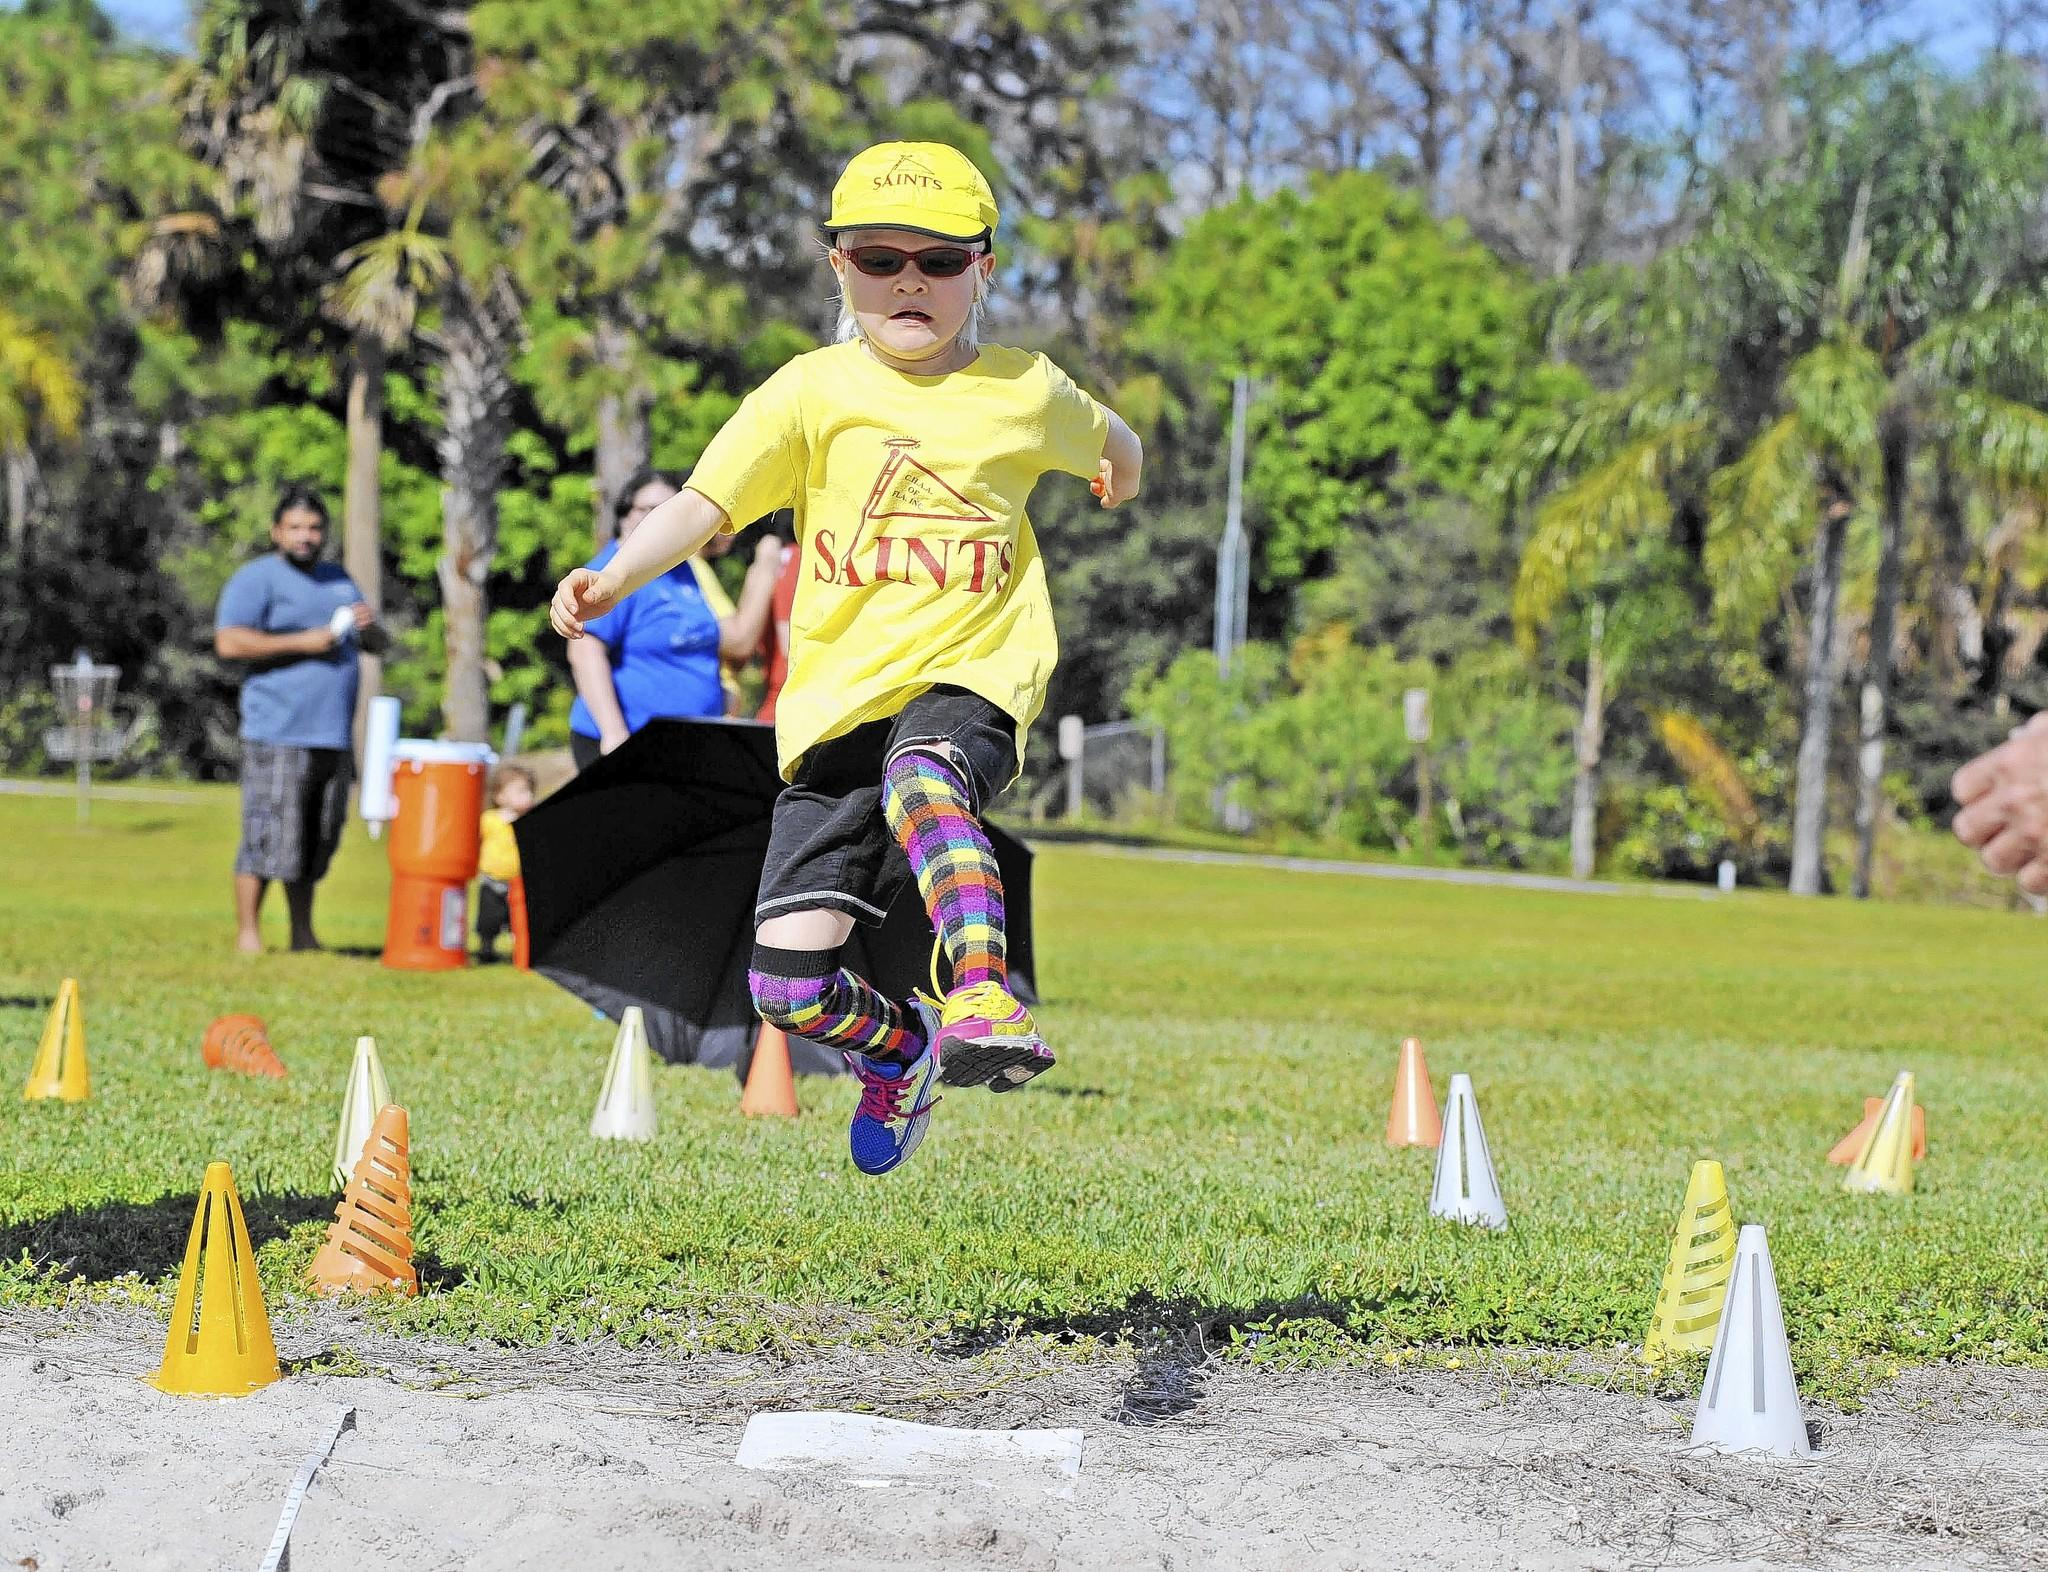 Dania Beach's Mae Li Wilcox does the running broad jump during the annual Saints International Track and Field meet for home schoolers recently at Tradewinds Park in Coconut Creek. Wilcox, who is legally blind, was one of an estimated 1,300 participants from Broward and Palm Beach counties.